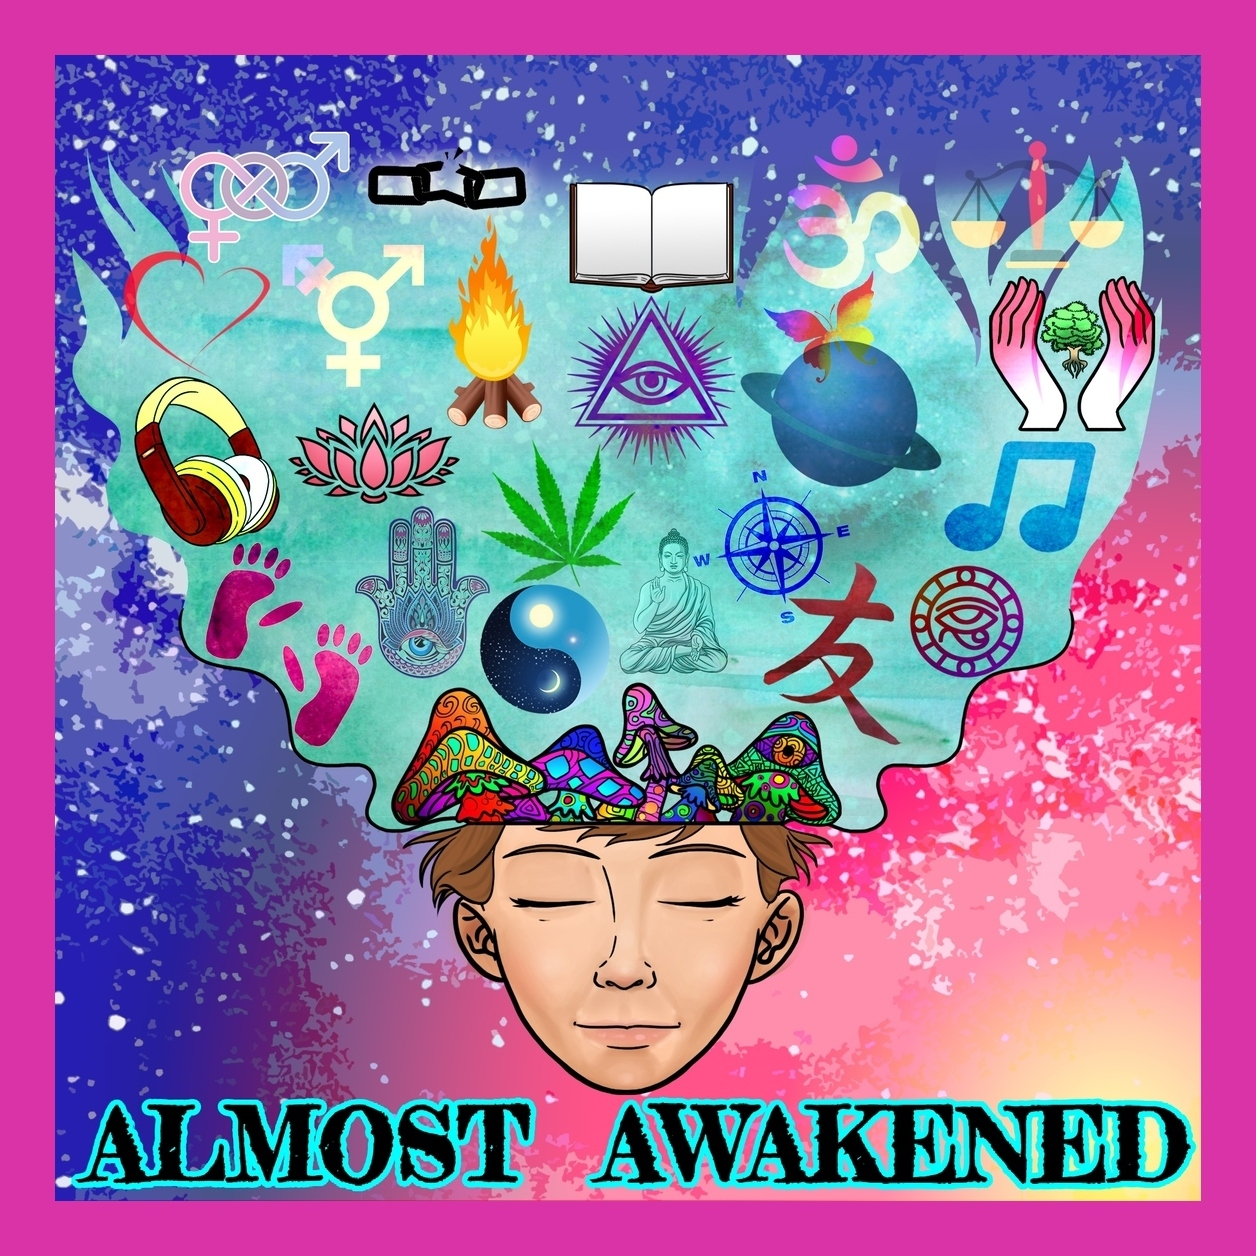 Almost Awakened: 007: The Purpose of Life